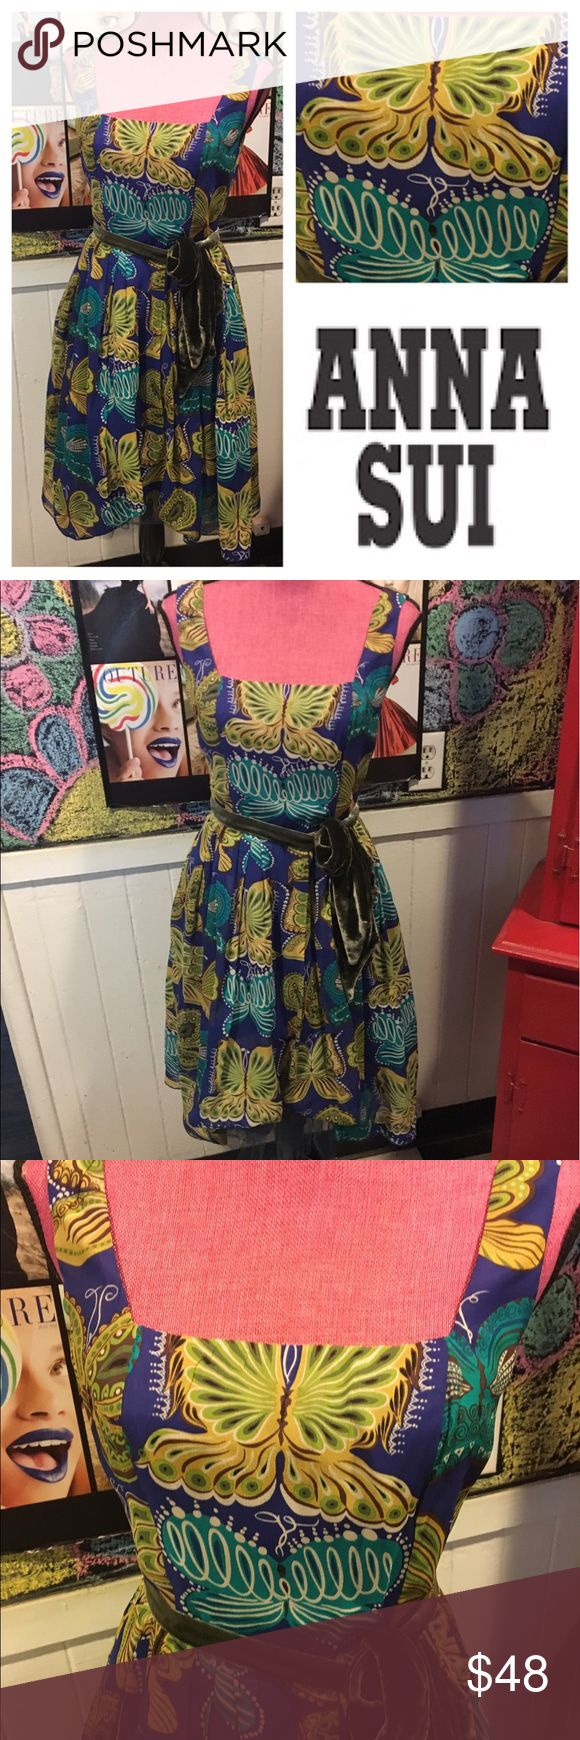 """Funky ANNA SUI s4 butterfly 🦋 DRESS 😍 How fun is this Anna Sui dress.  Size 4 super interesting colors are all over the place.  Chest is 30"""" waist is 24"""".  I love the velvet green belt.   There are three layers...for puffy bottom.  In like new condition except inside purple has worn down a little.   Can't tell unless your looking inside.  Otherwise the dress is perfect funk. Anna Sui Dresses"""